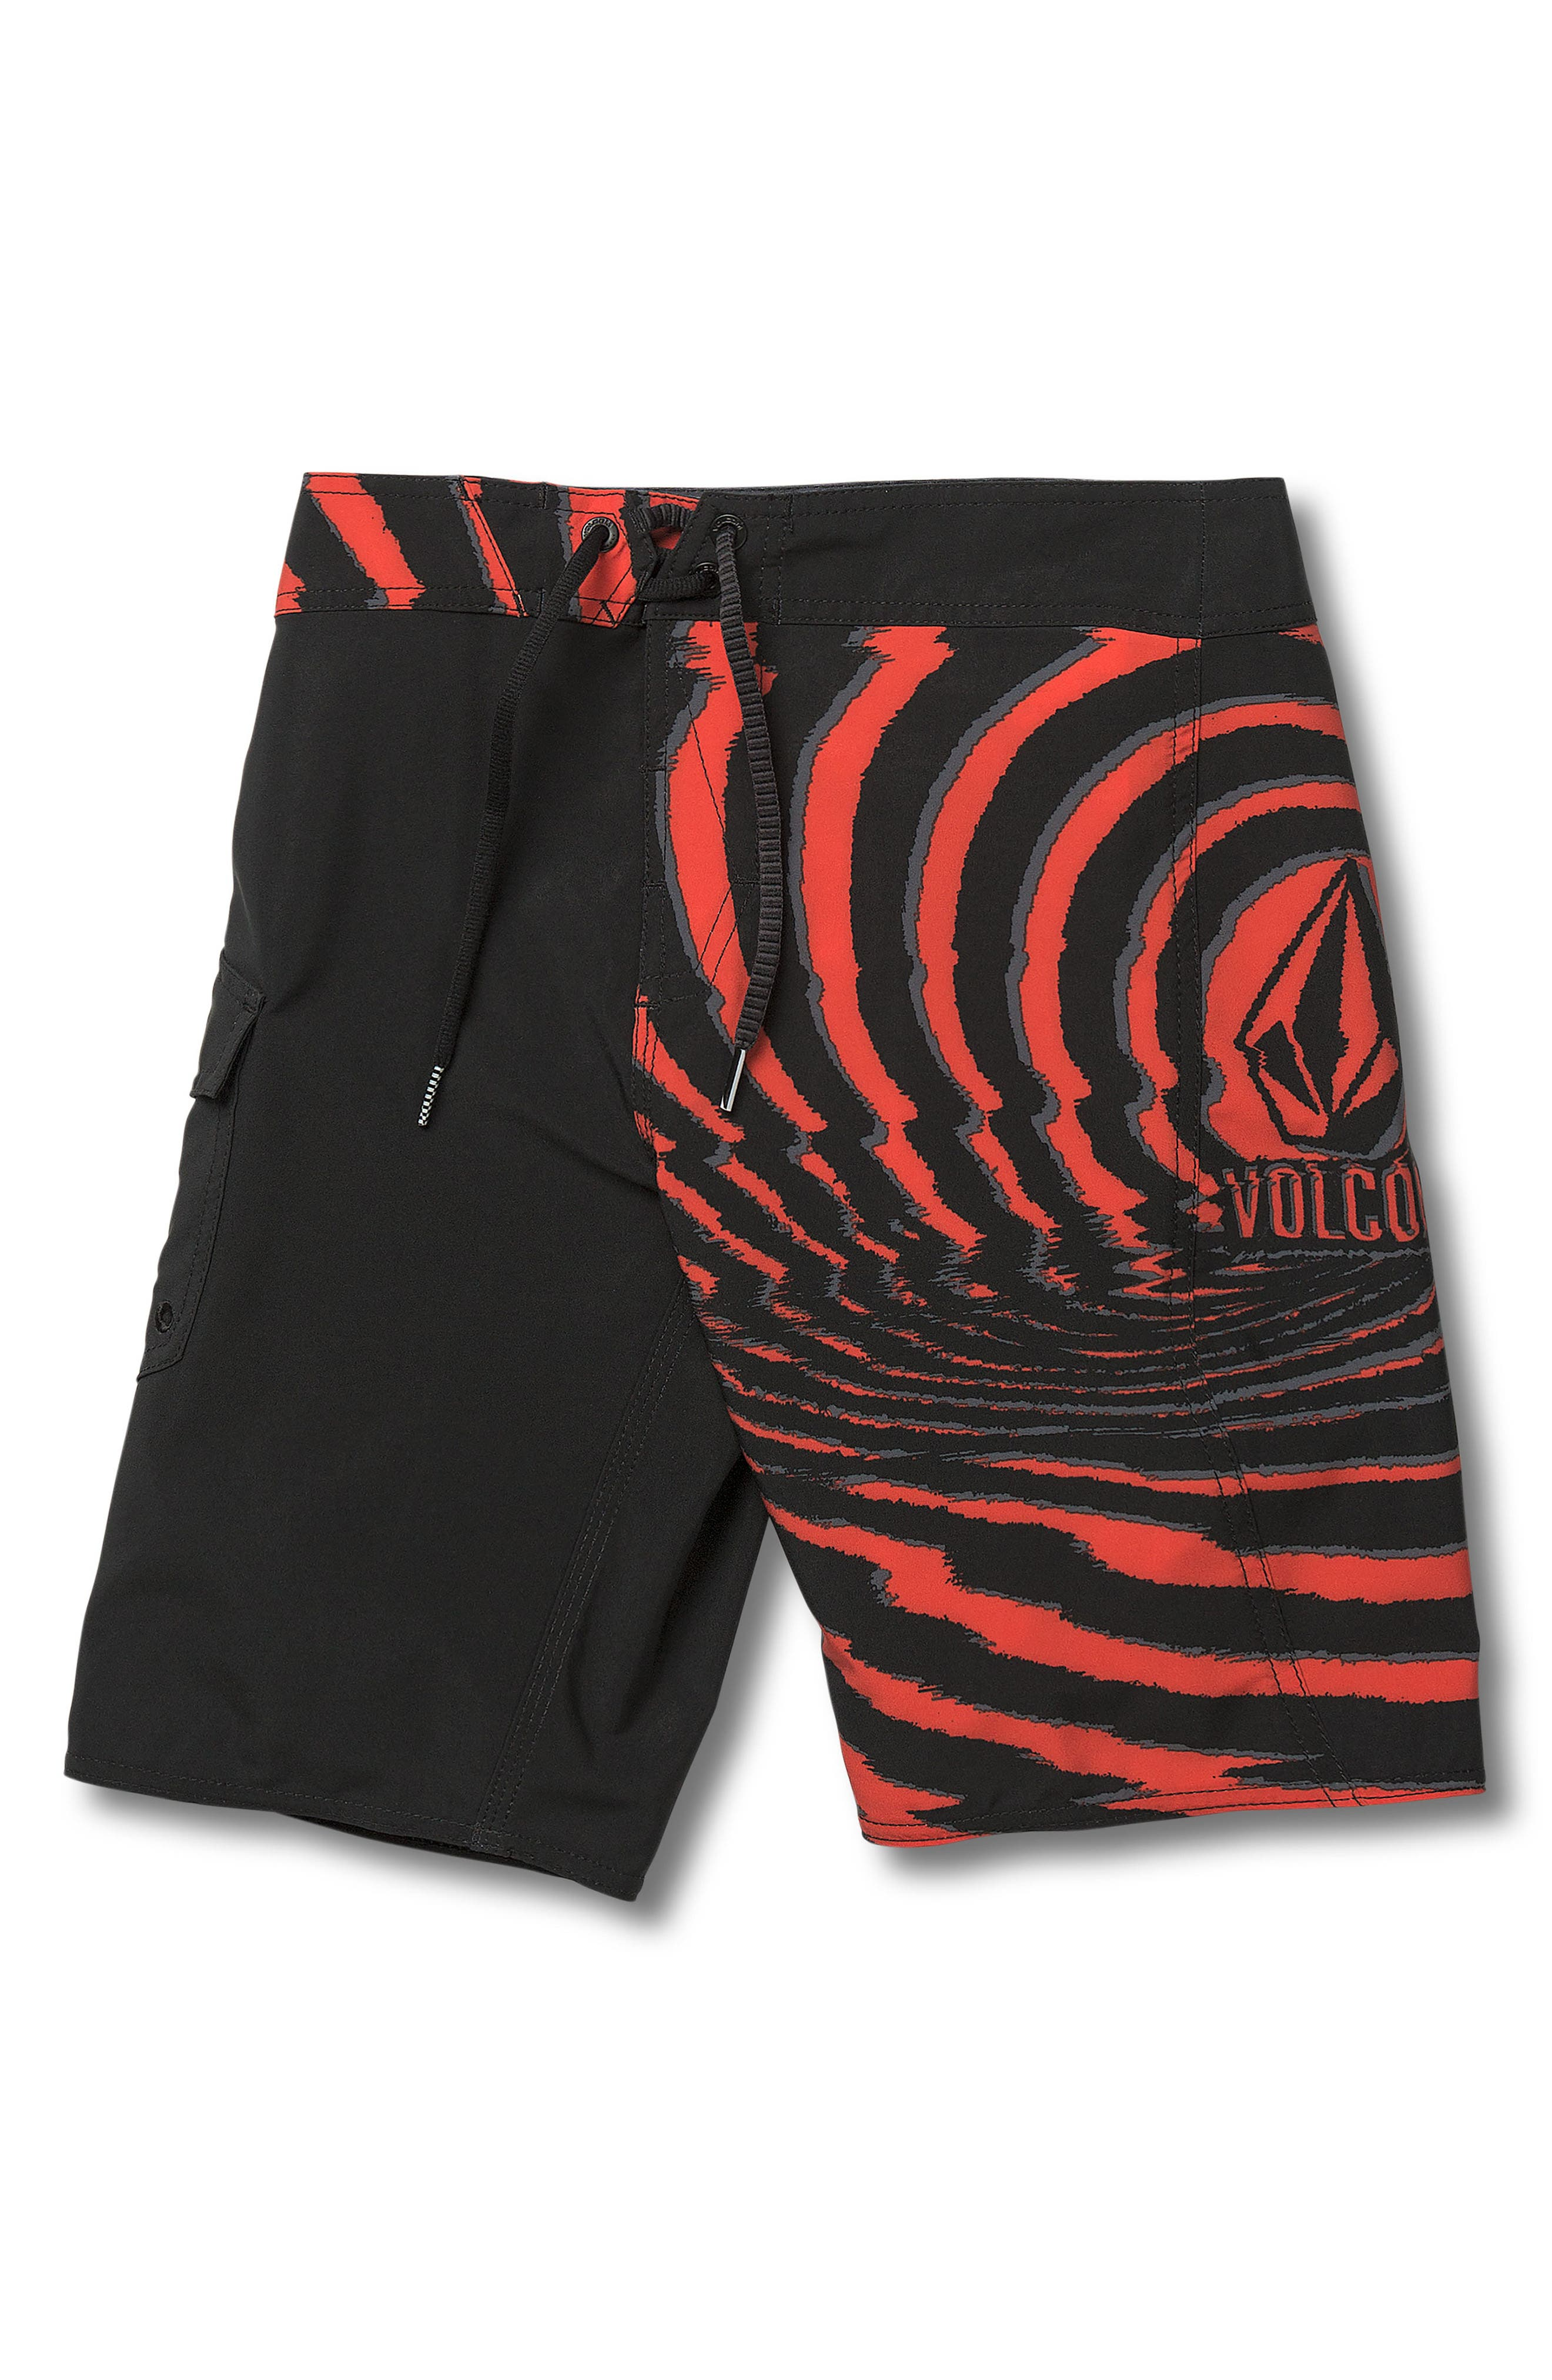 VOLCOM Lido Block Mod Board Shorts, Main, color, WHY ROCK RED